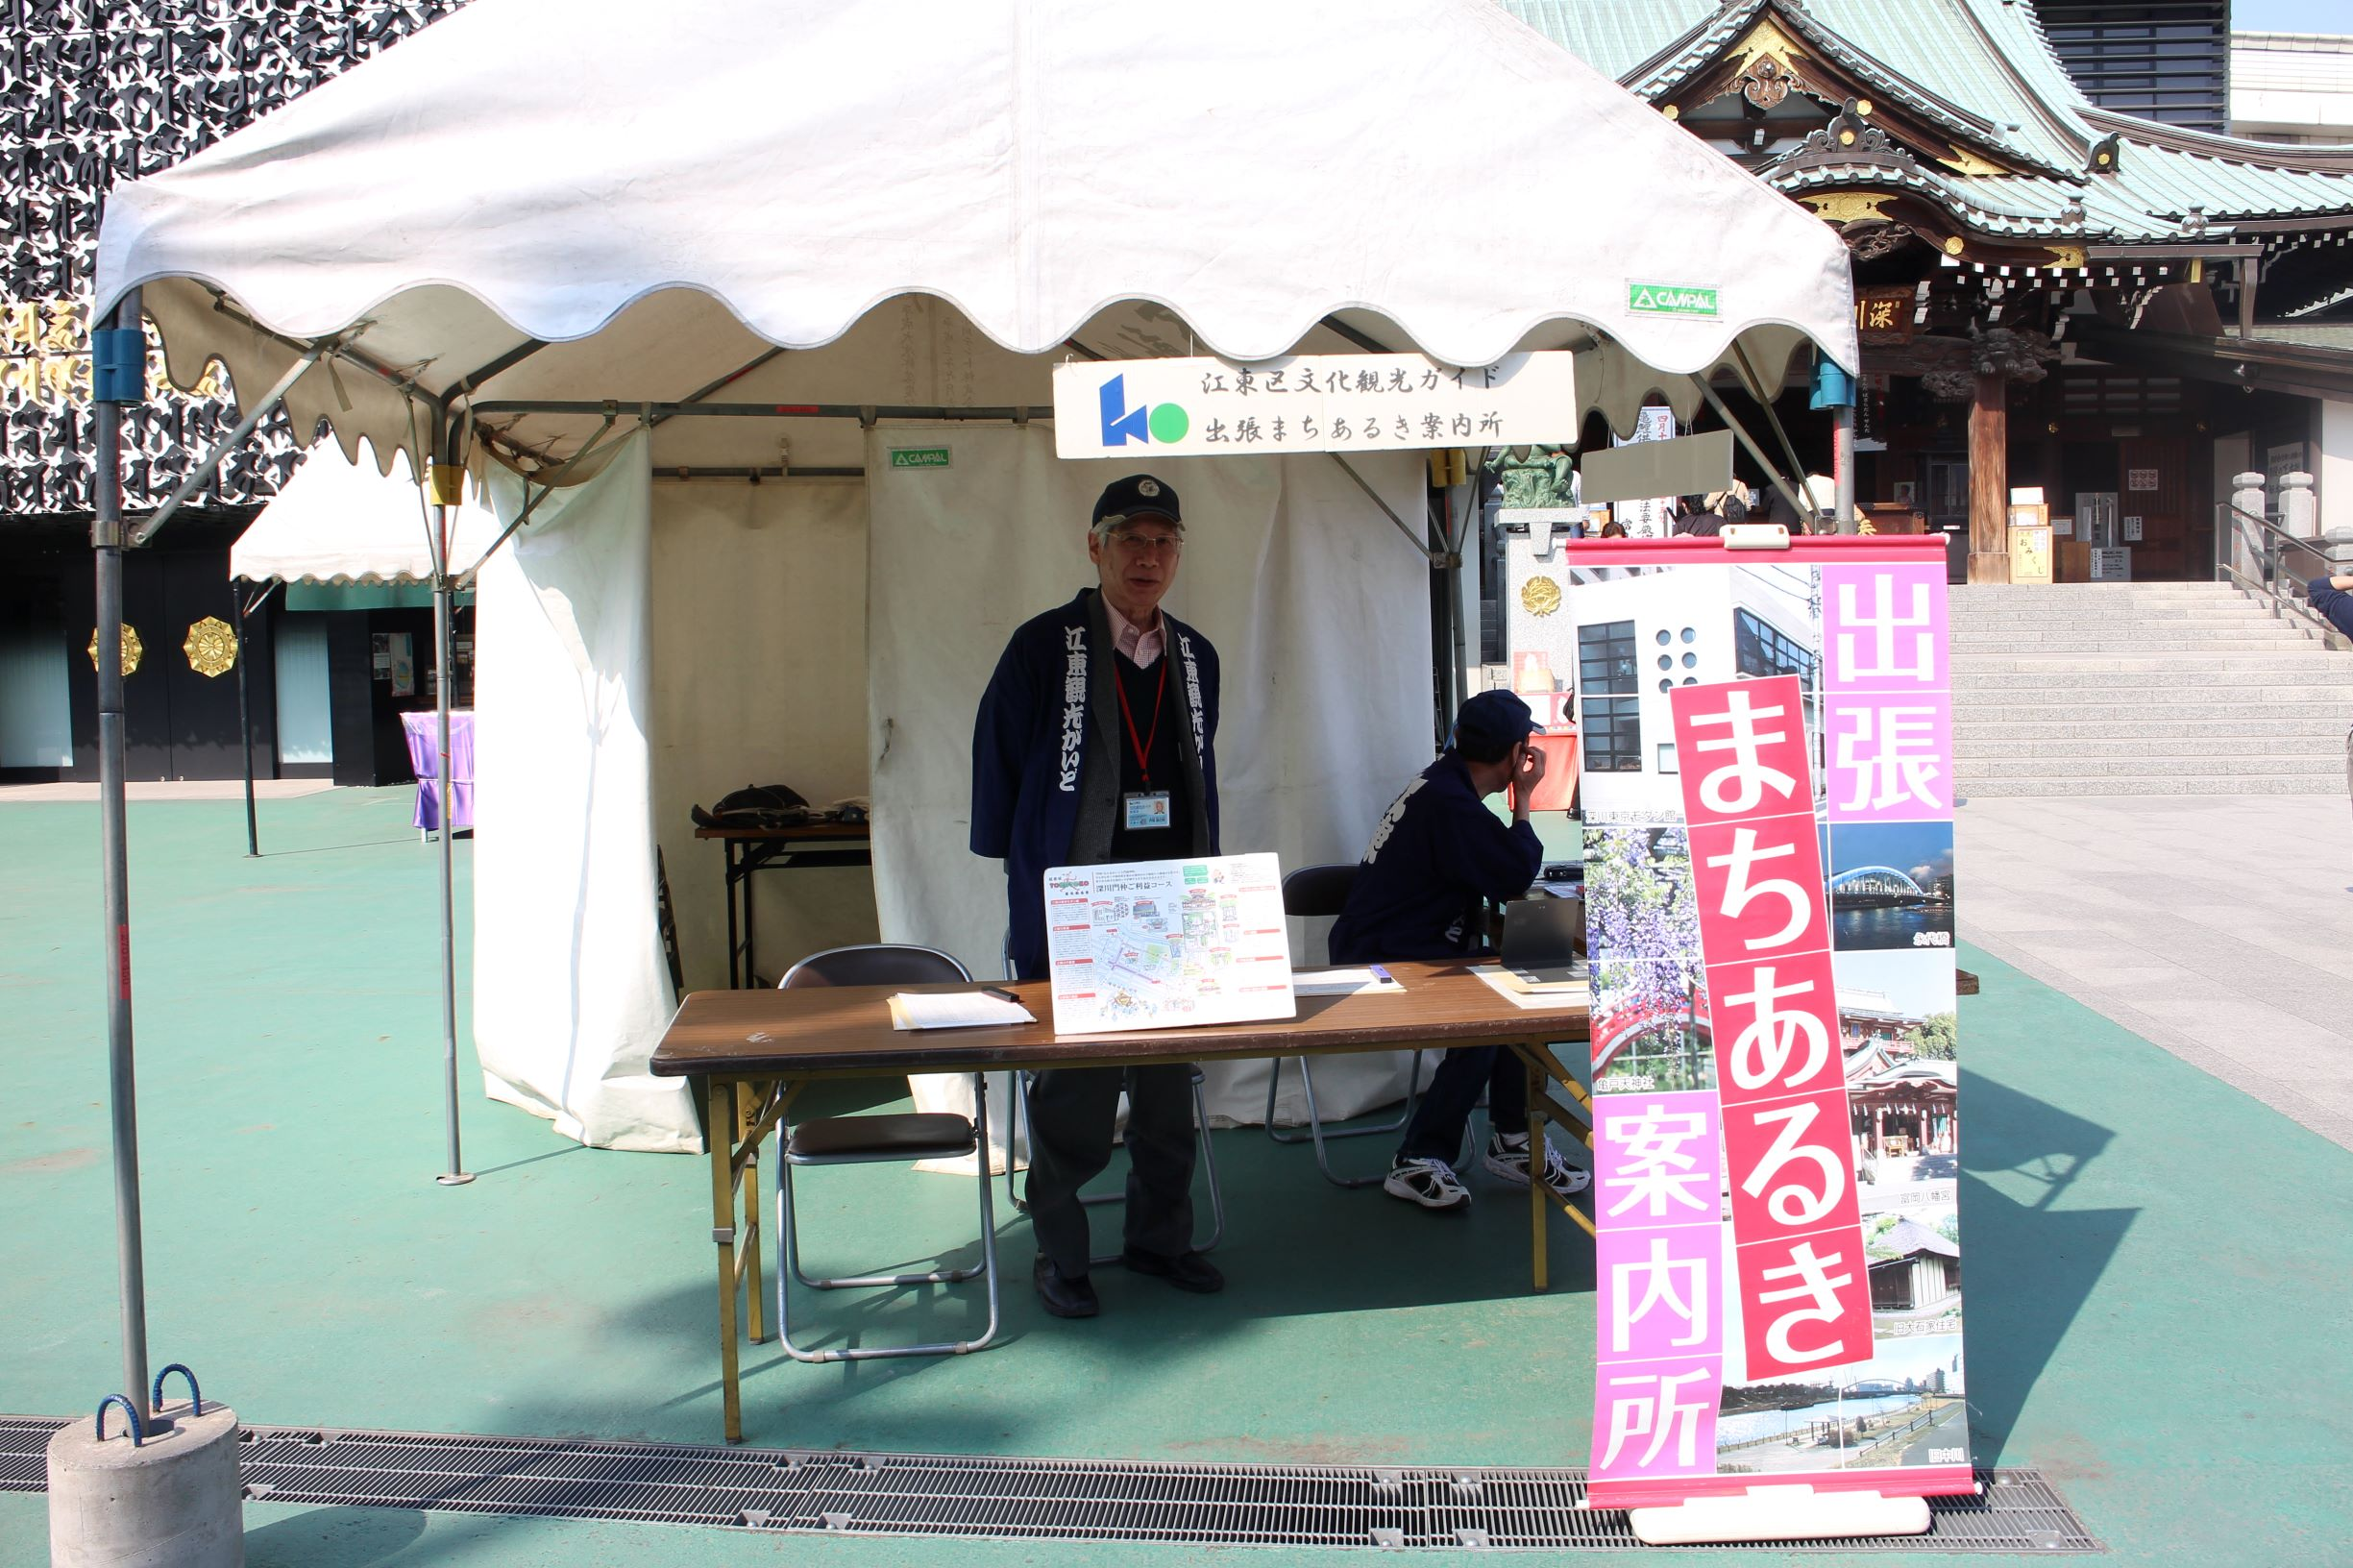 """[Koto Who's who in Koto-ku] """"The business trip-cho walk information desk"""" that is performed to event in meeting's chairperson Kazue Iwabuchi ward of Koto City culture tour guide."""